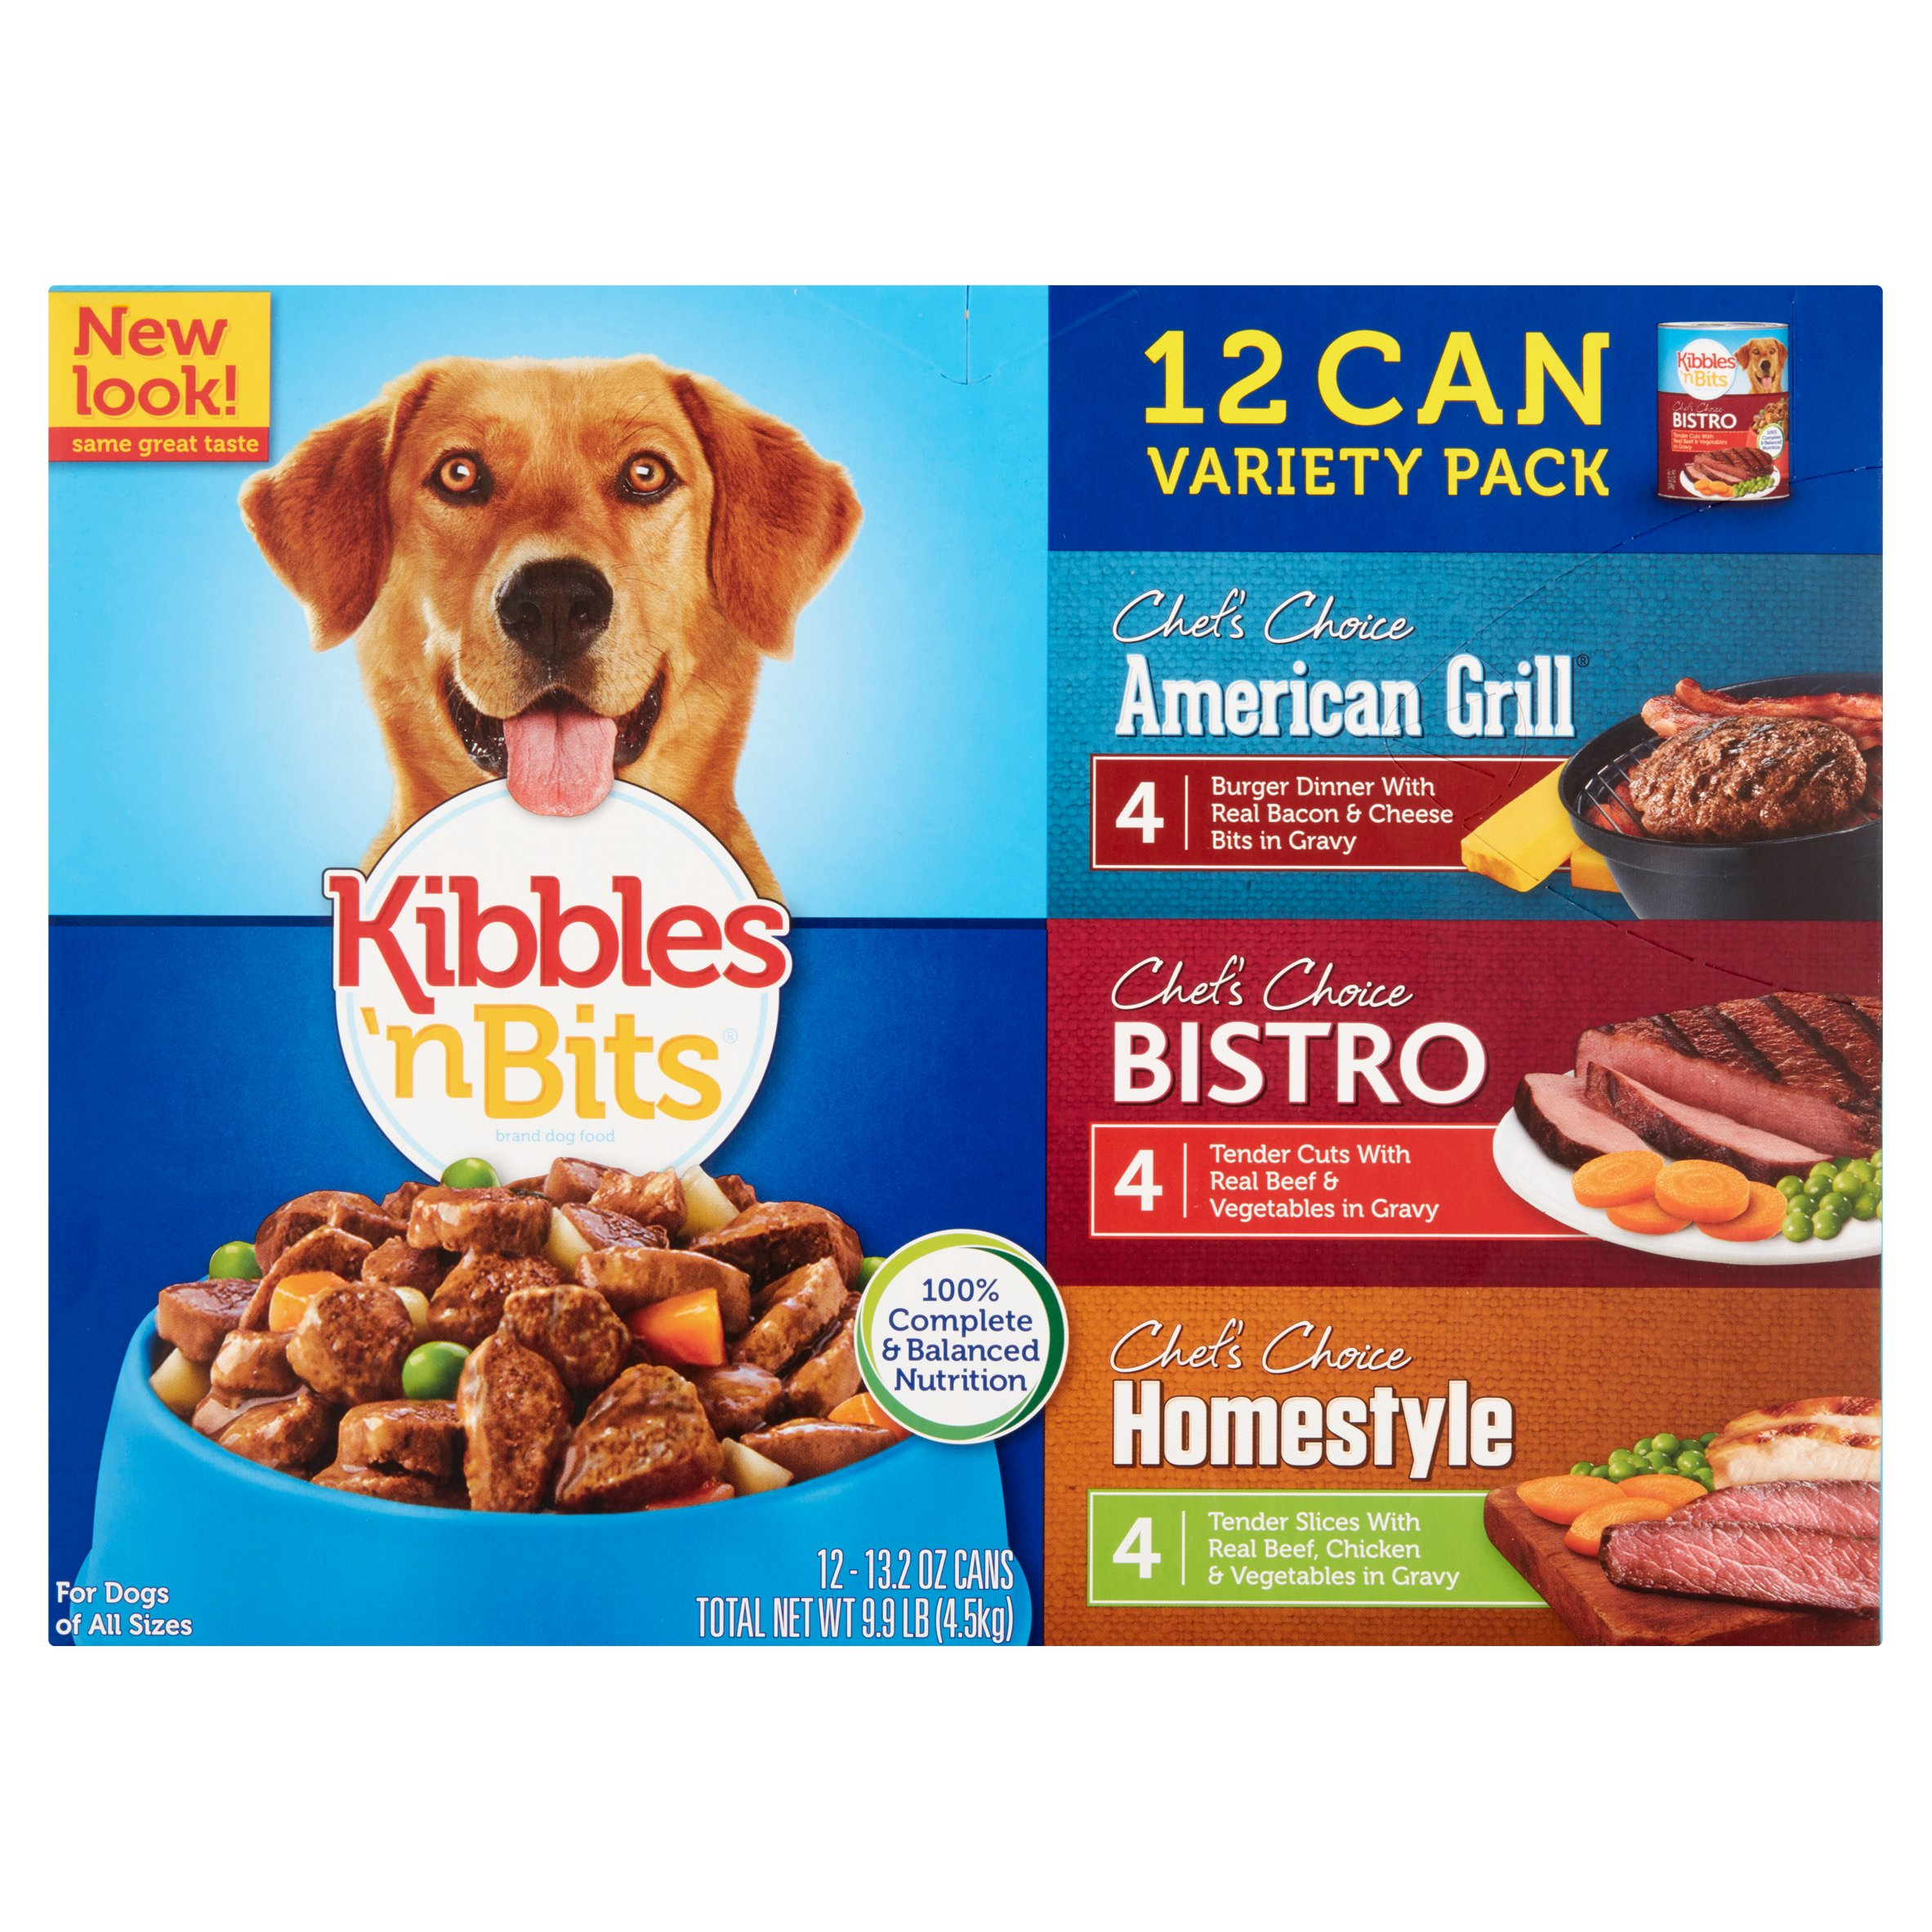 photo relating to Kibbles and Bits Printable Coupons known as Kibble n bits doggy meals - Saltworks promo code